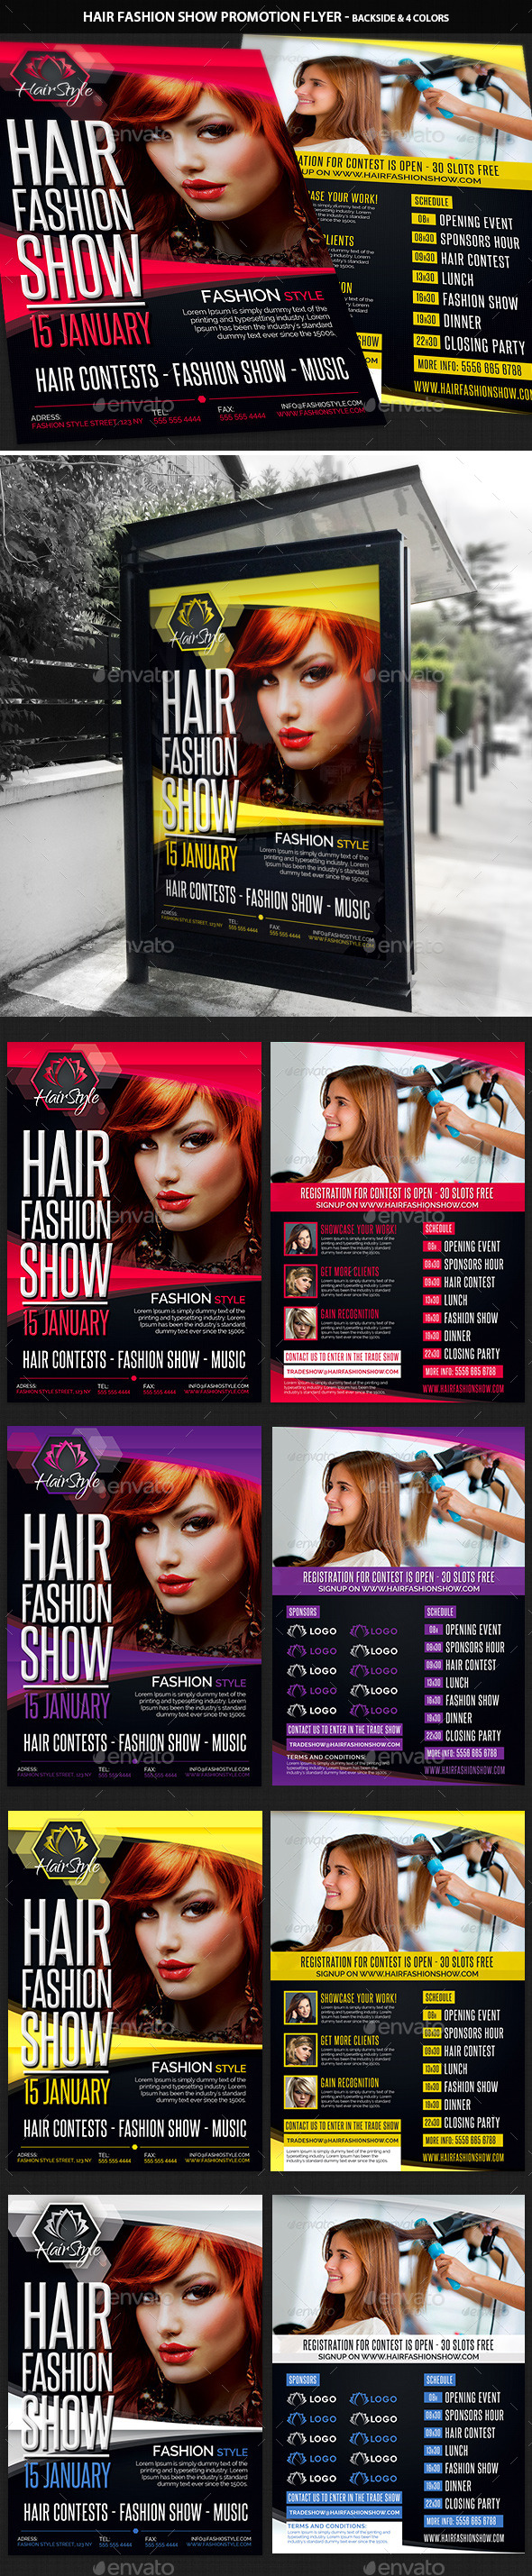 Hair Fashion Show Promotion Flyer - Corporate Flyers